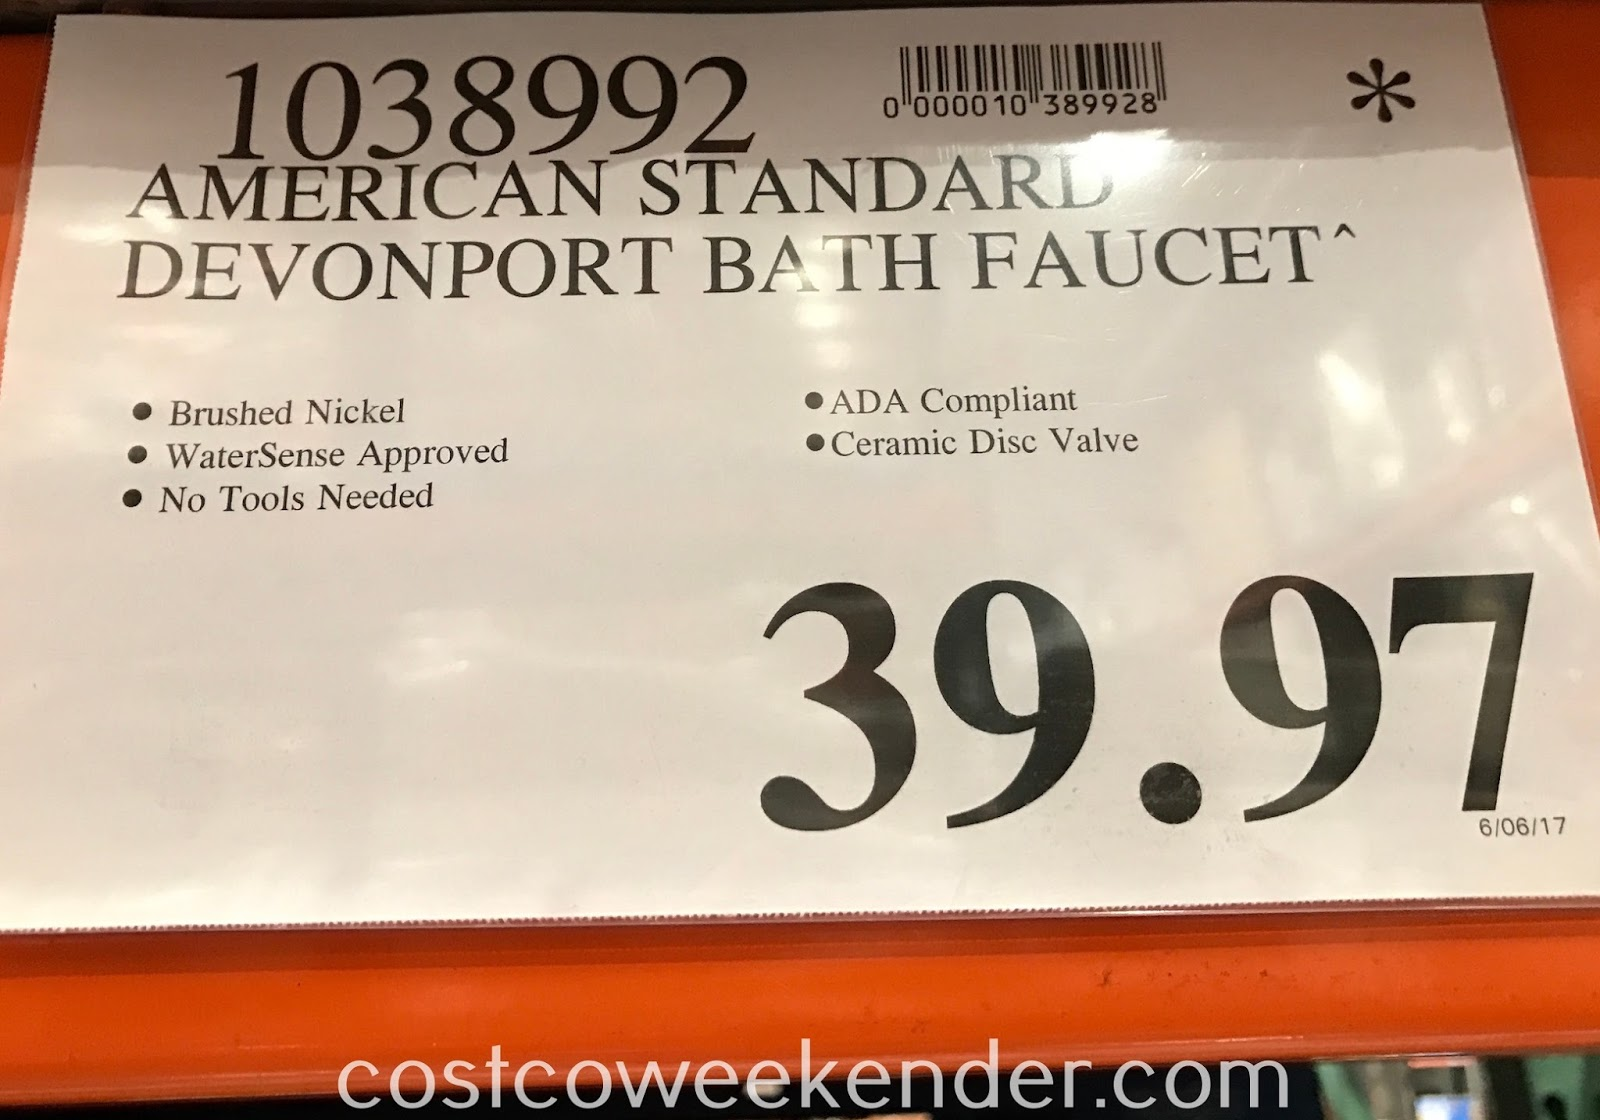 Deal for the American Standard Devonport Bath Faucet at Costco